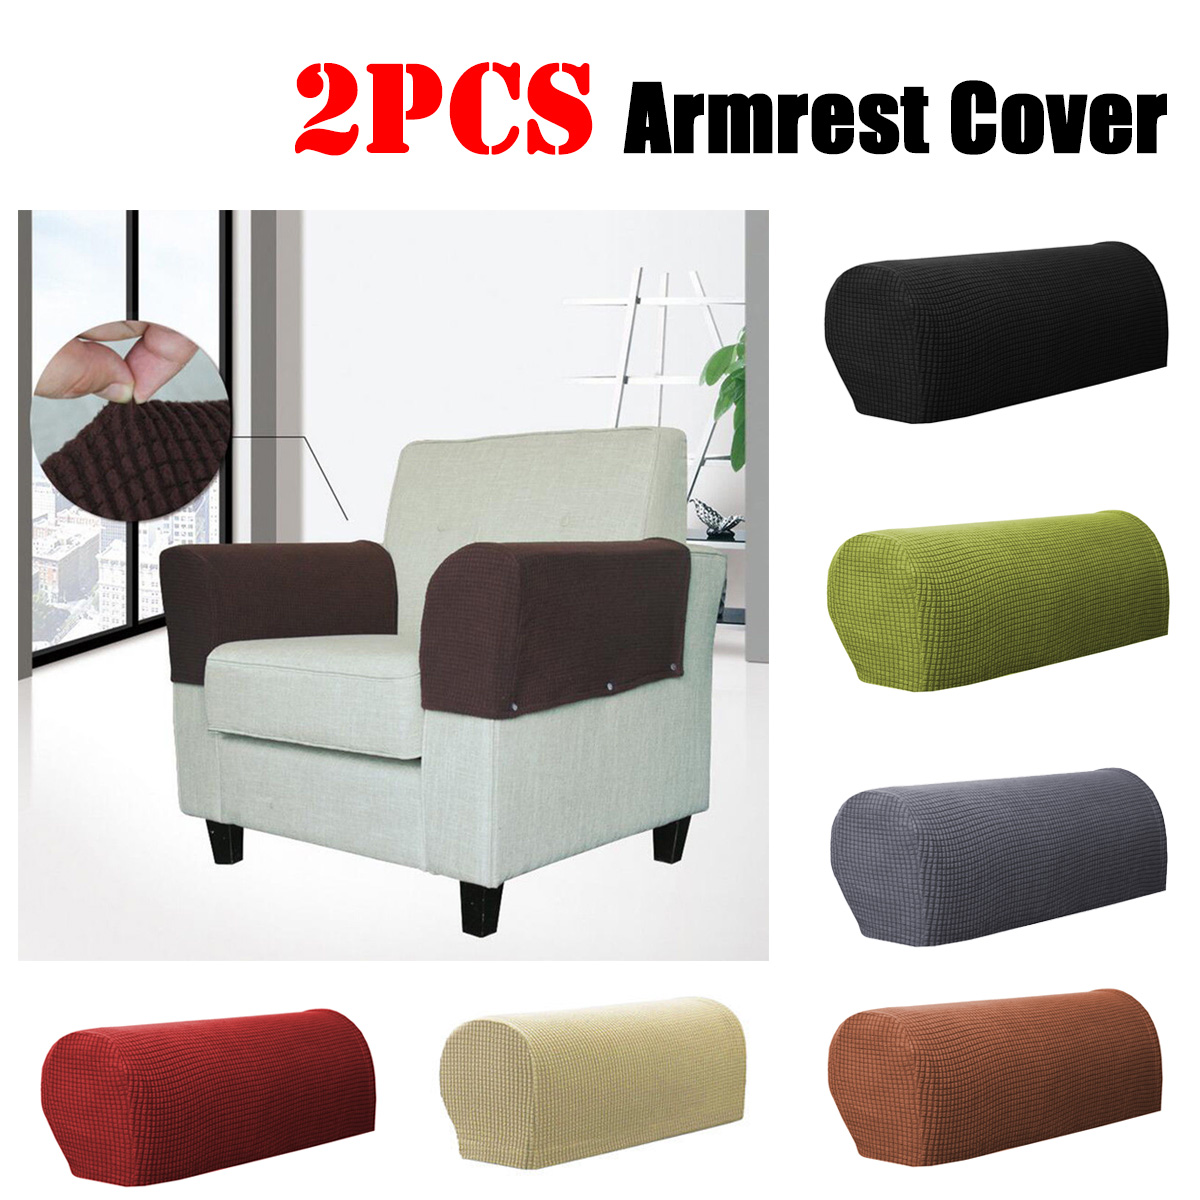 2PCS Premium Stretch Furniture Armrest Covers Slipcovers Sofa Chair Couch Chair Arm Protectors